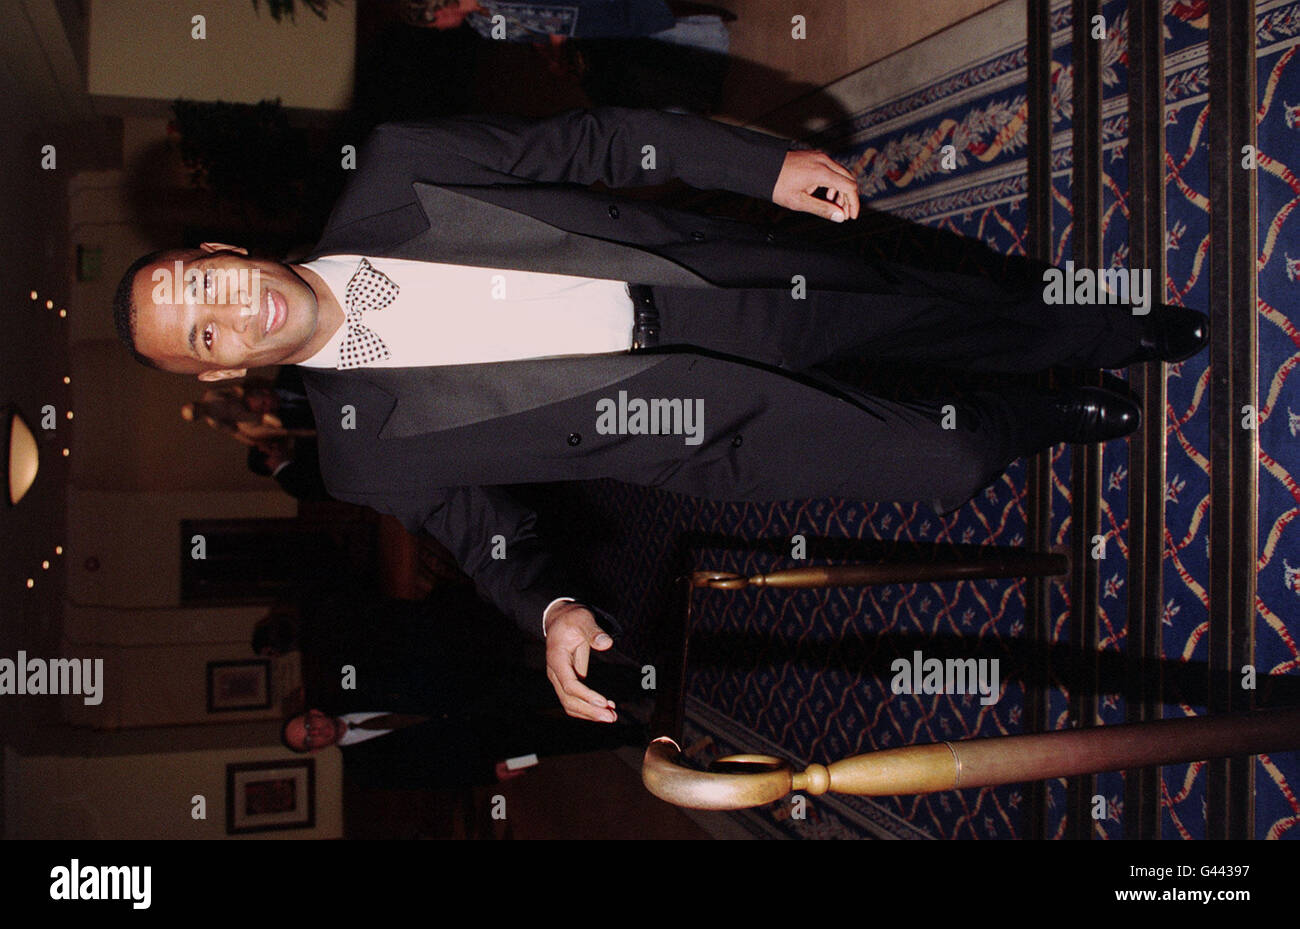 Les Ferdinand arriving at Professional Footballers Assoc. Dinner - Stock Image